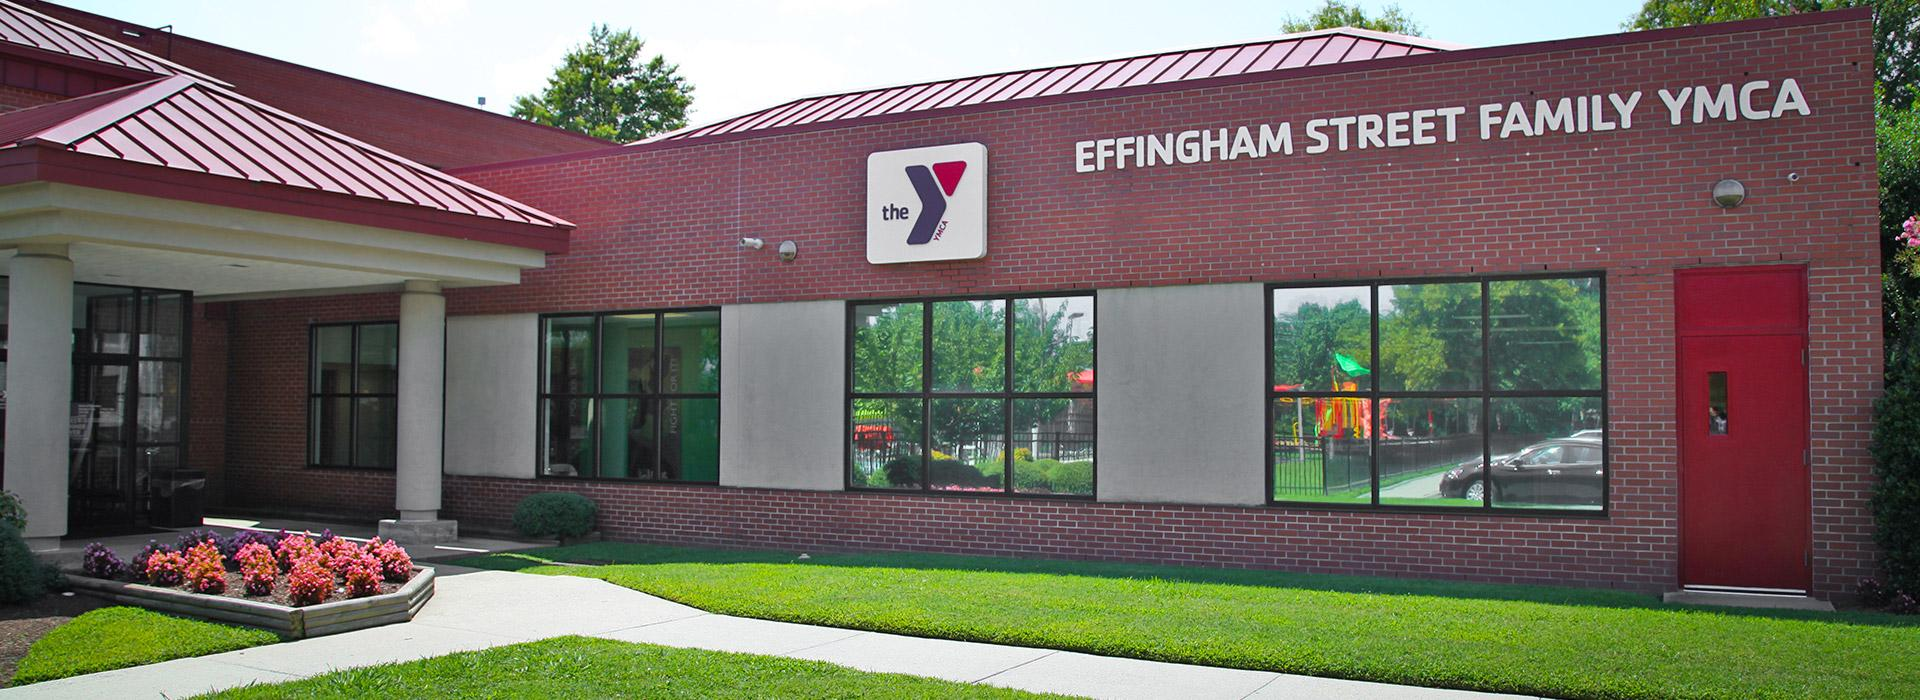 Effingham Street Family YMCA outside view